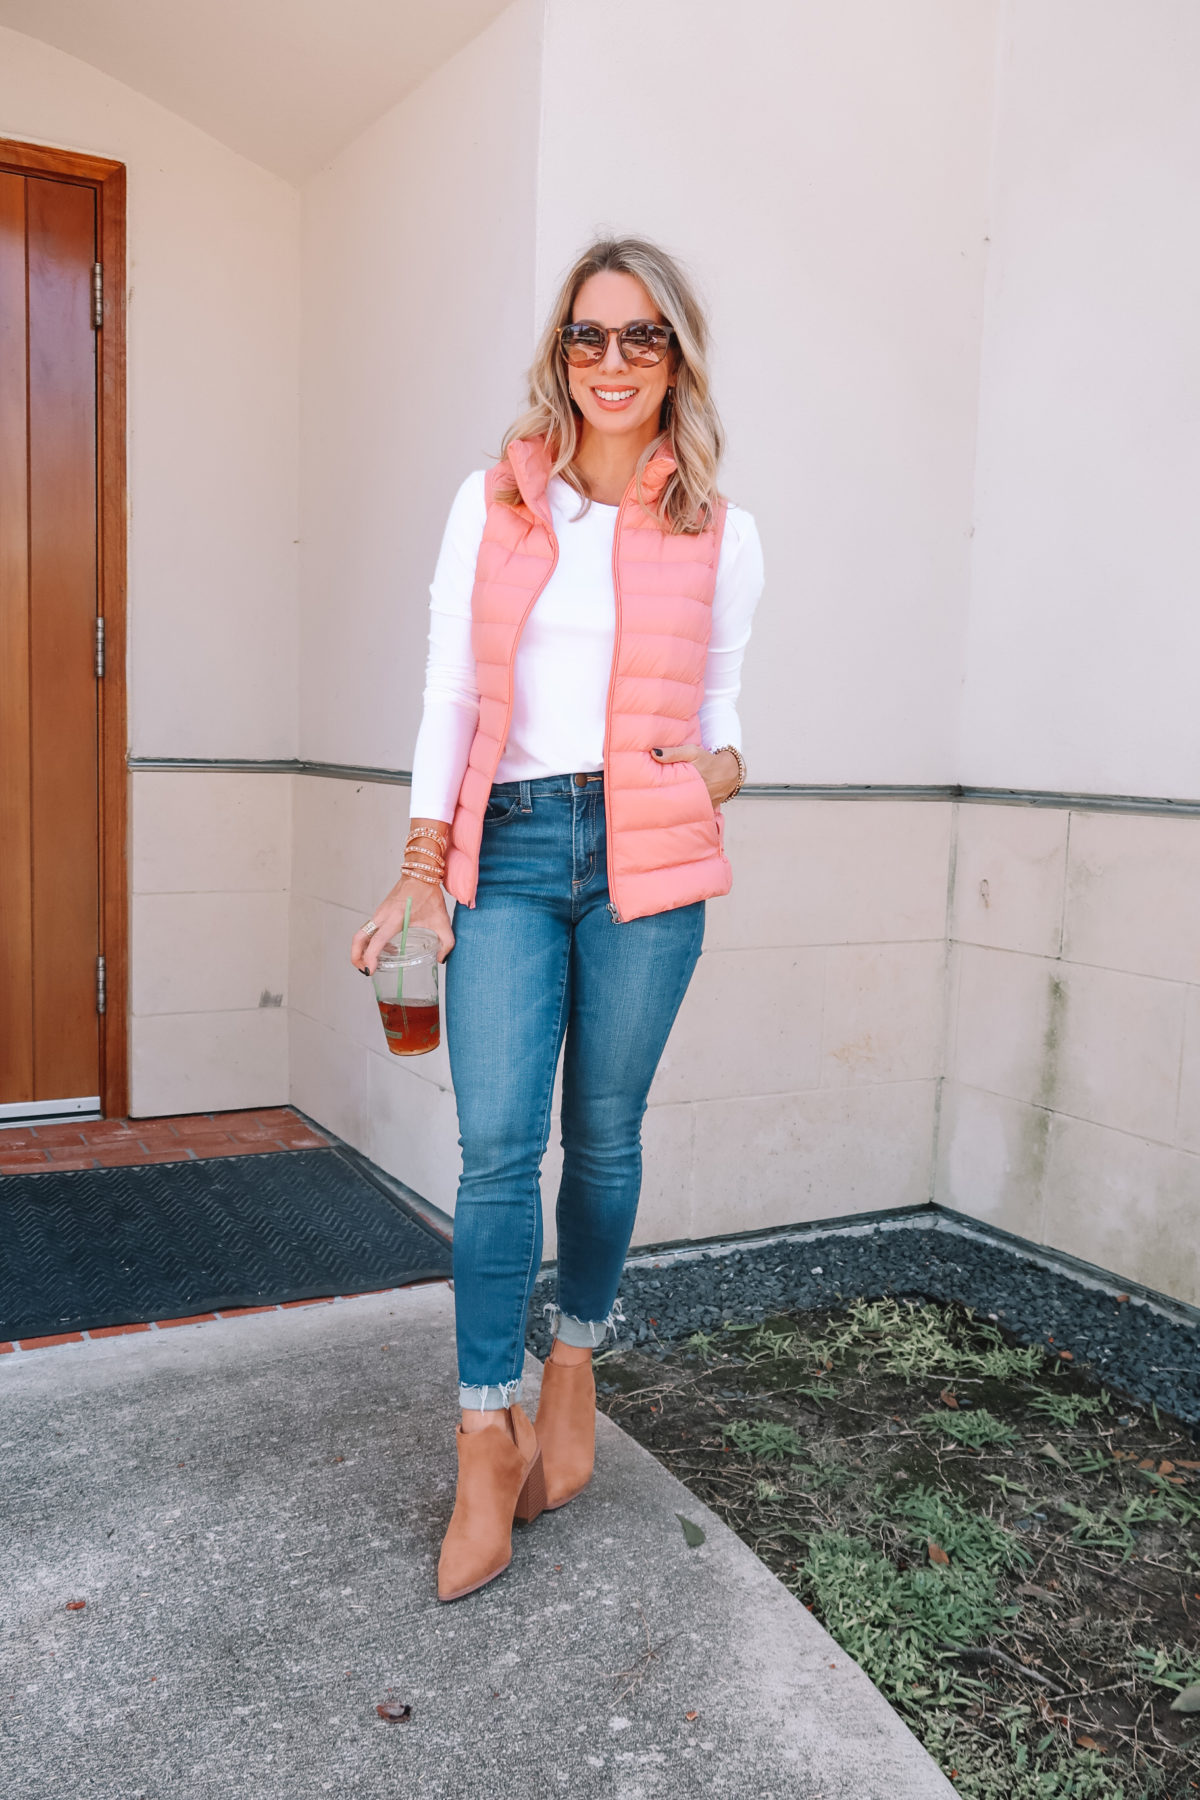 Outfits Lately, White Tee, Puff Vest, Jeans, Booties